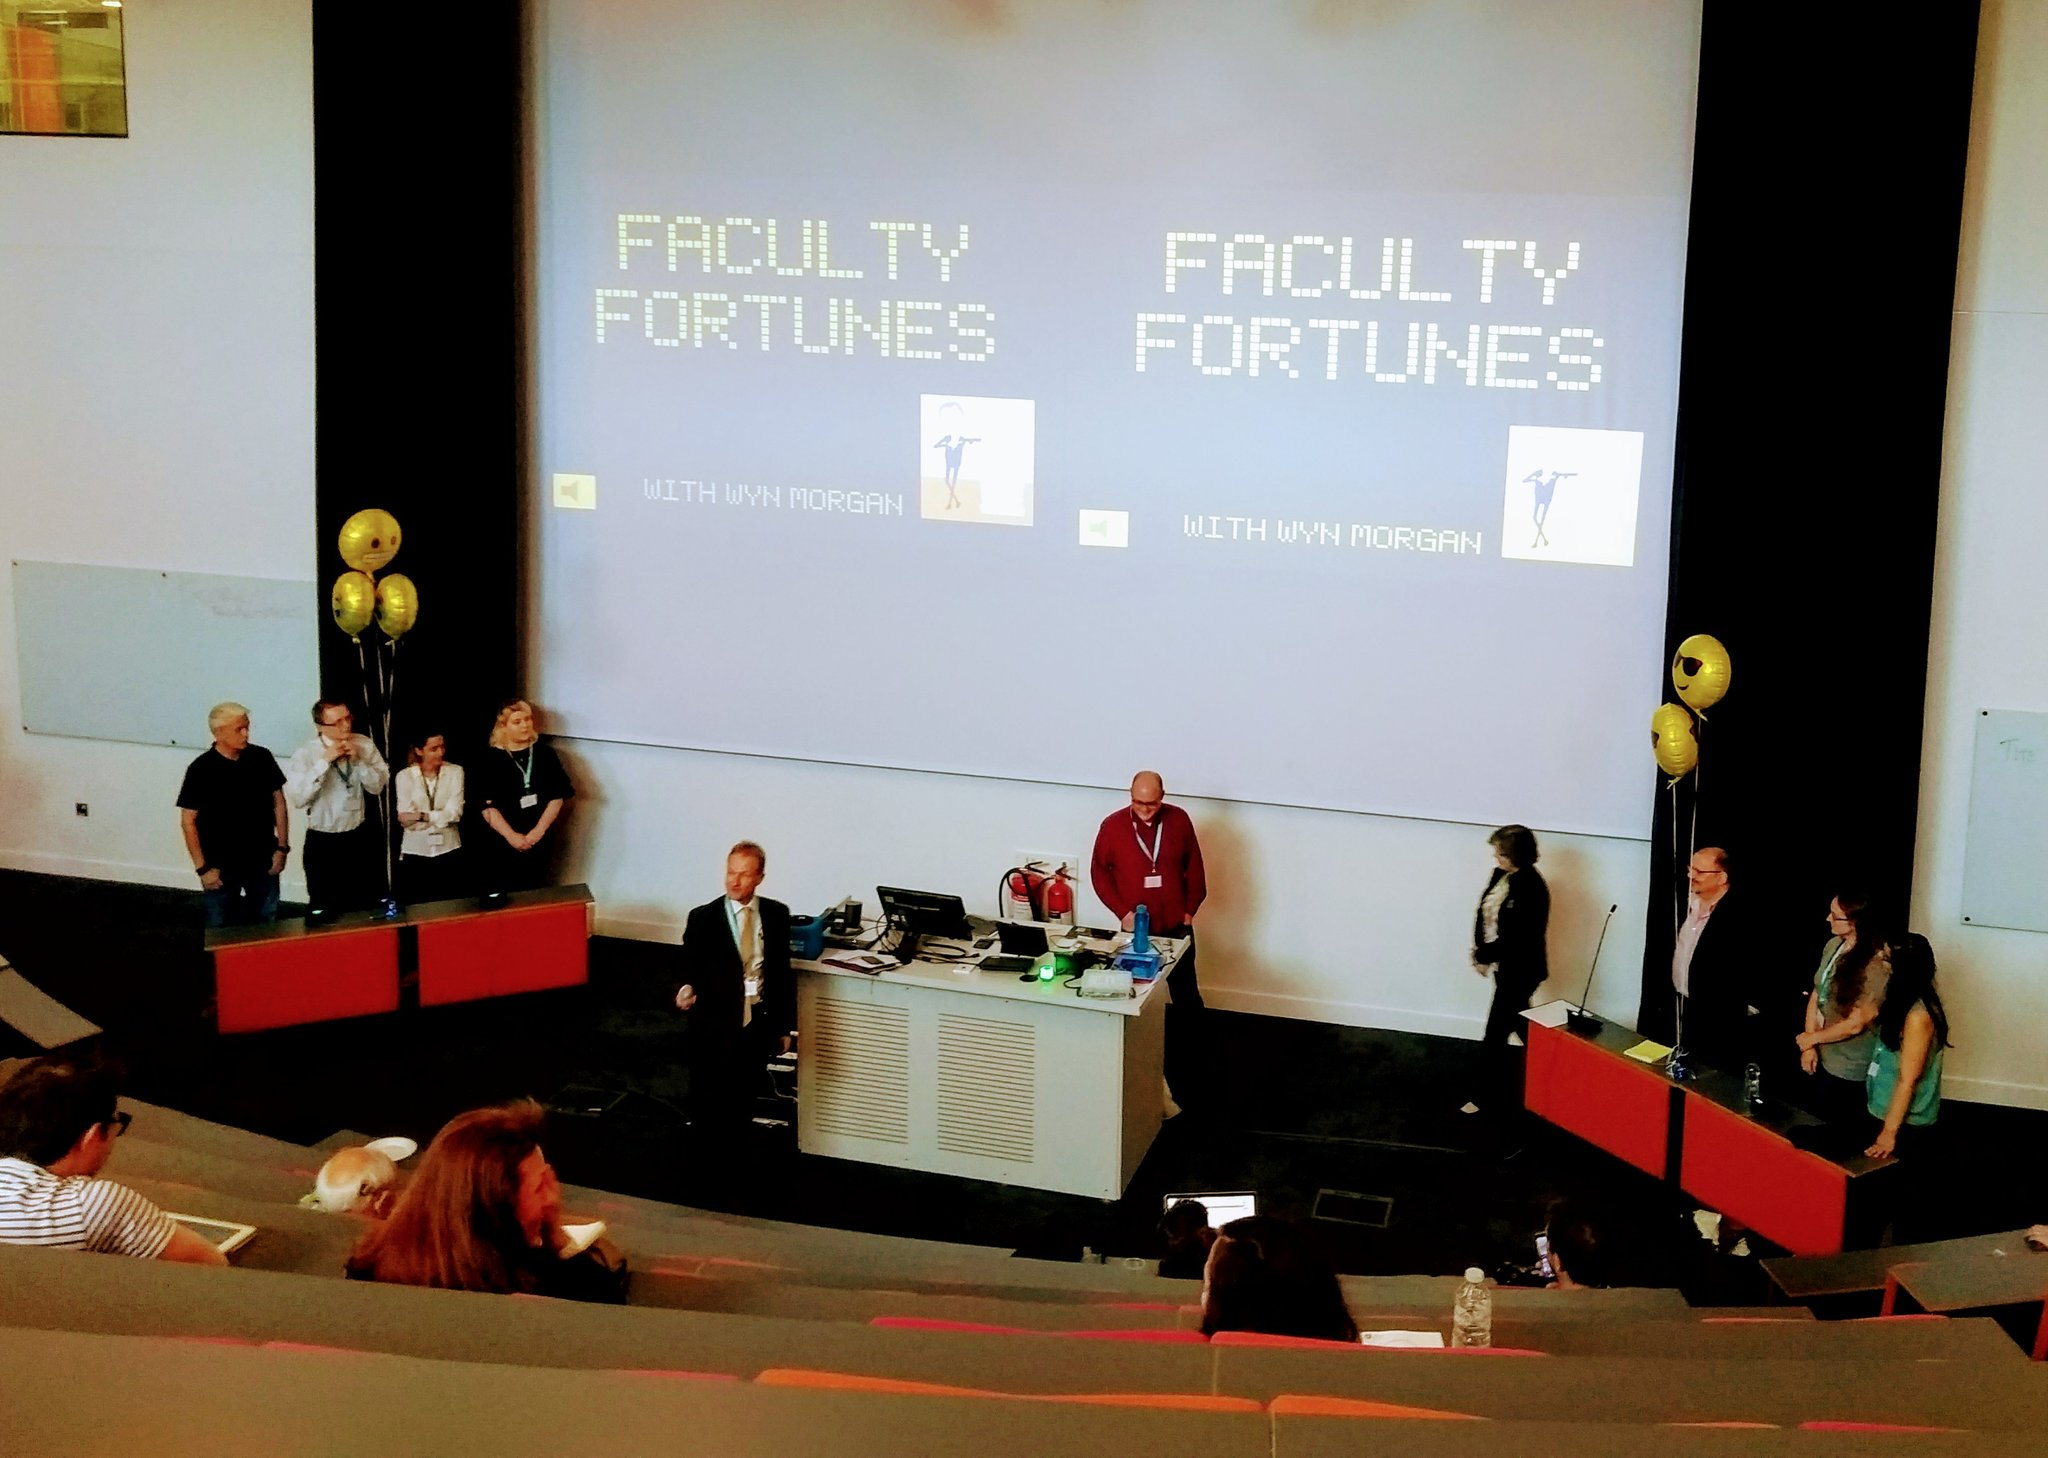 It's Faculty Fortunes time and host @WynMorgan8 (Les Dennis) explains the rules for those who didn't experience the original! #TELFest https://t.co/8bvD7cNKur